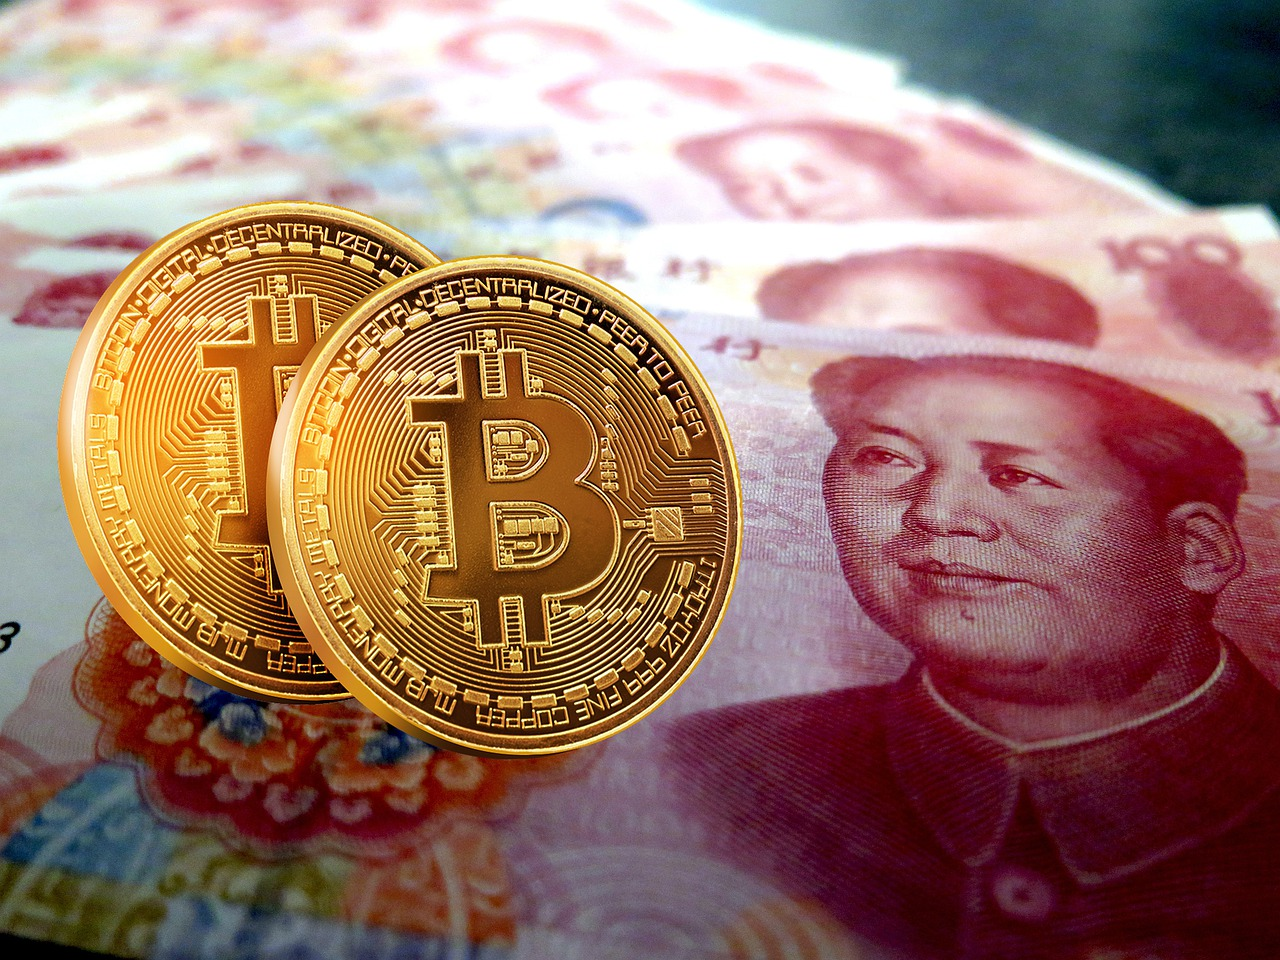 China's Digital Currency Supremacy Has Been Sealed with the U.S. Elections